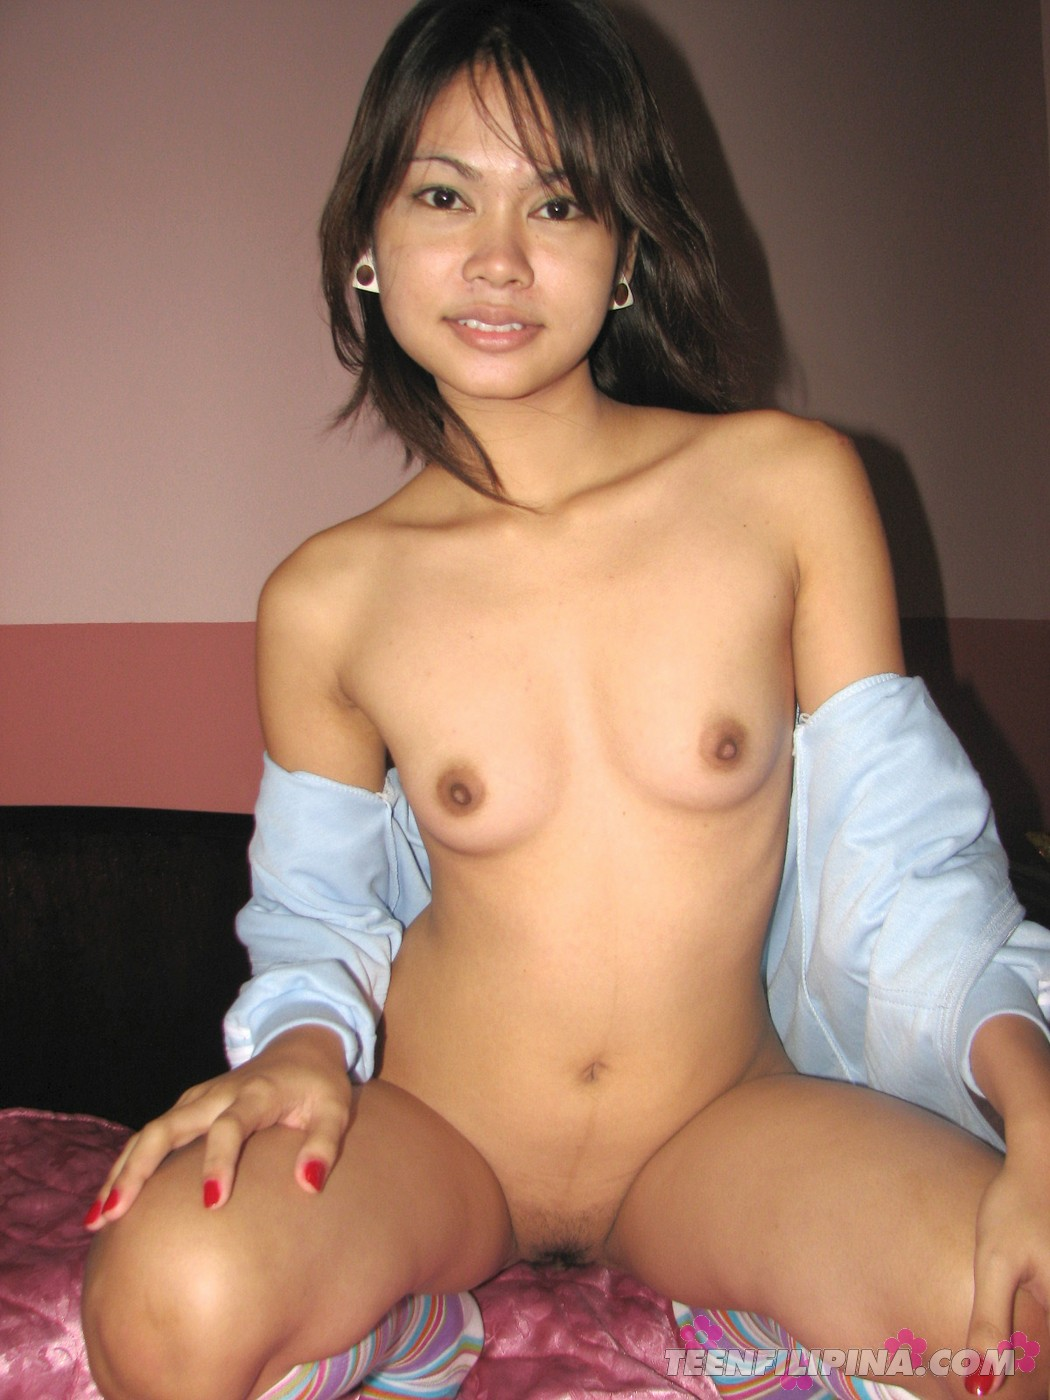 young inoscent girls caught naked